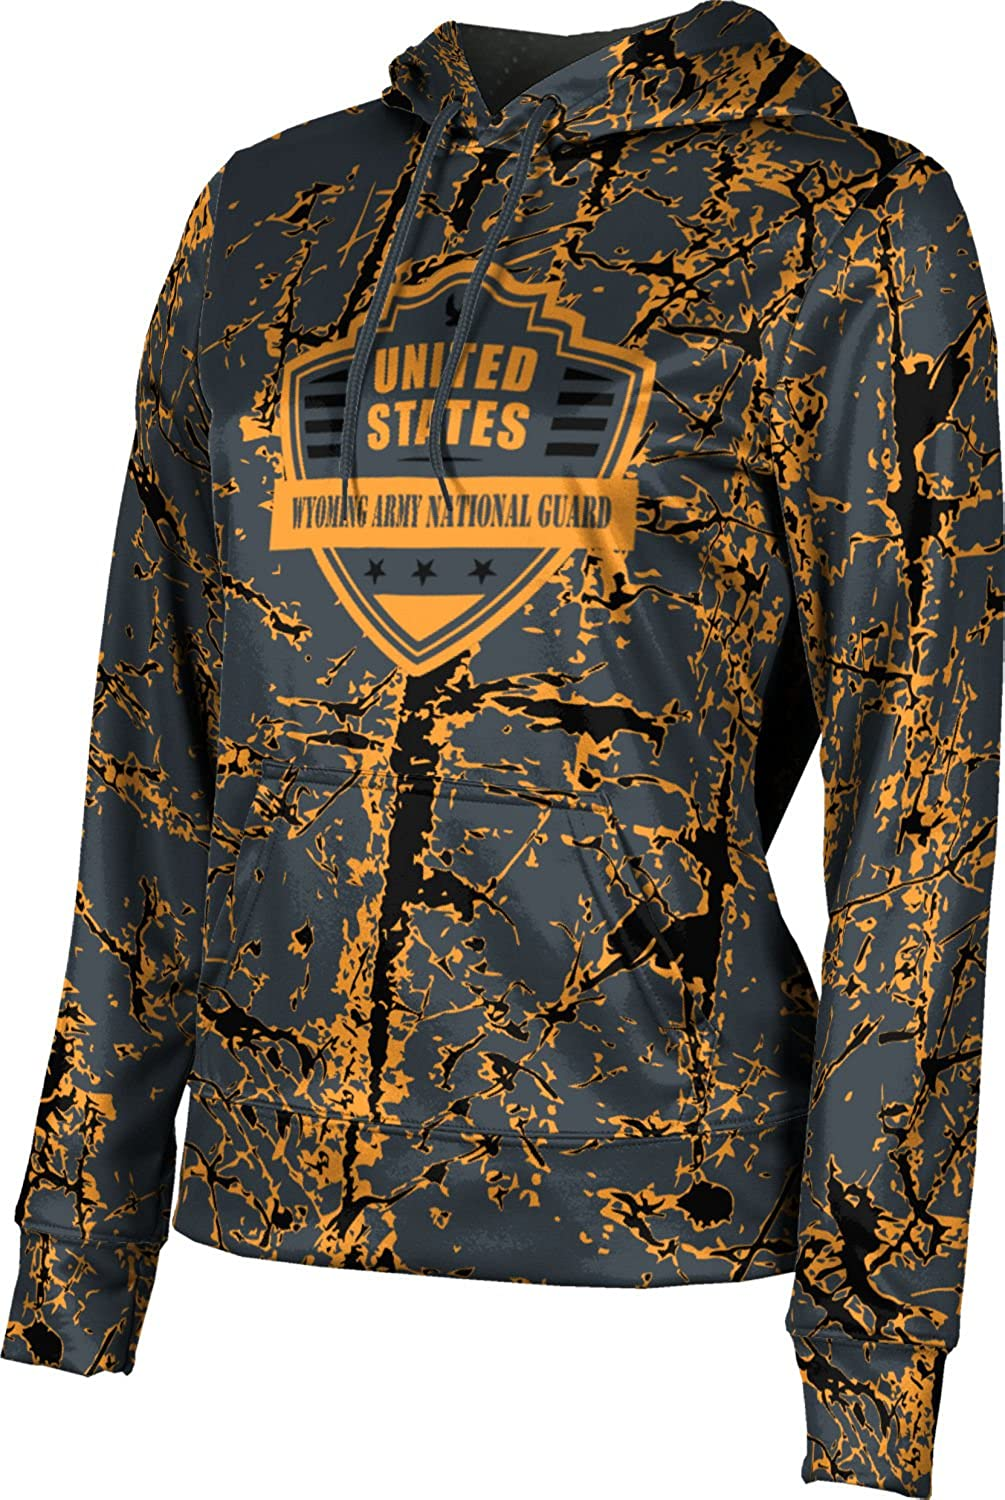 Women's Wyoming Army National Guard Military Distressed Pullover Hoodie